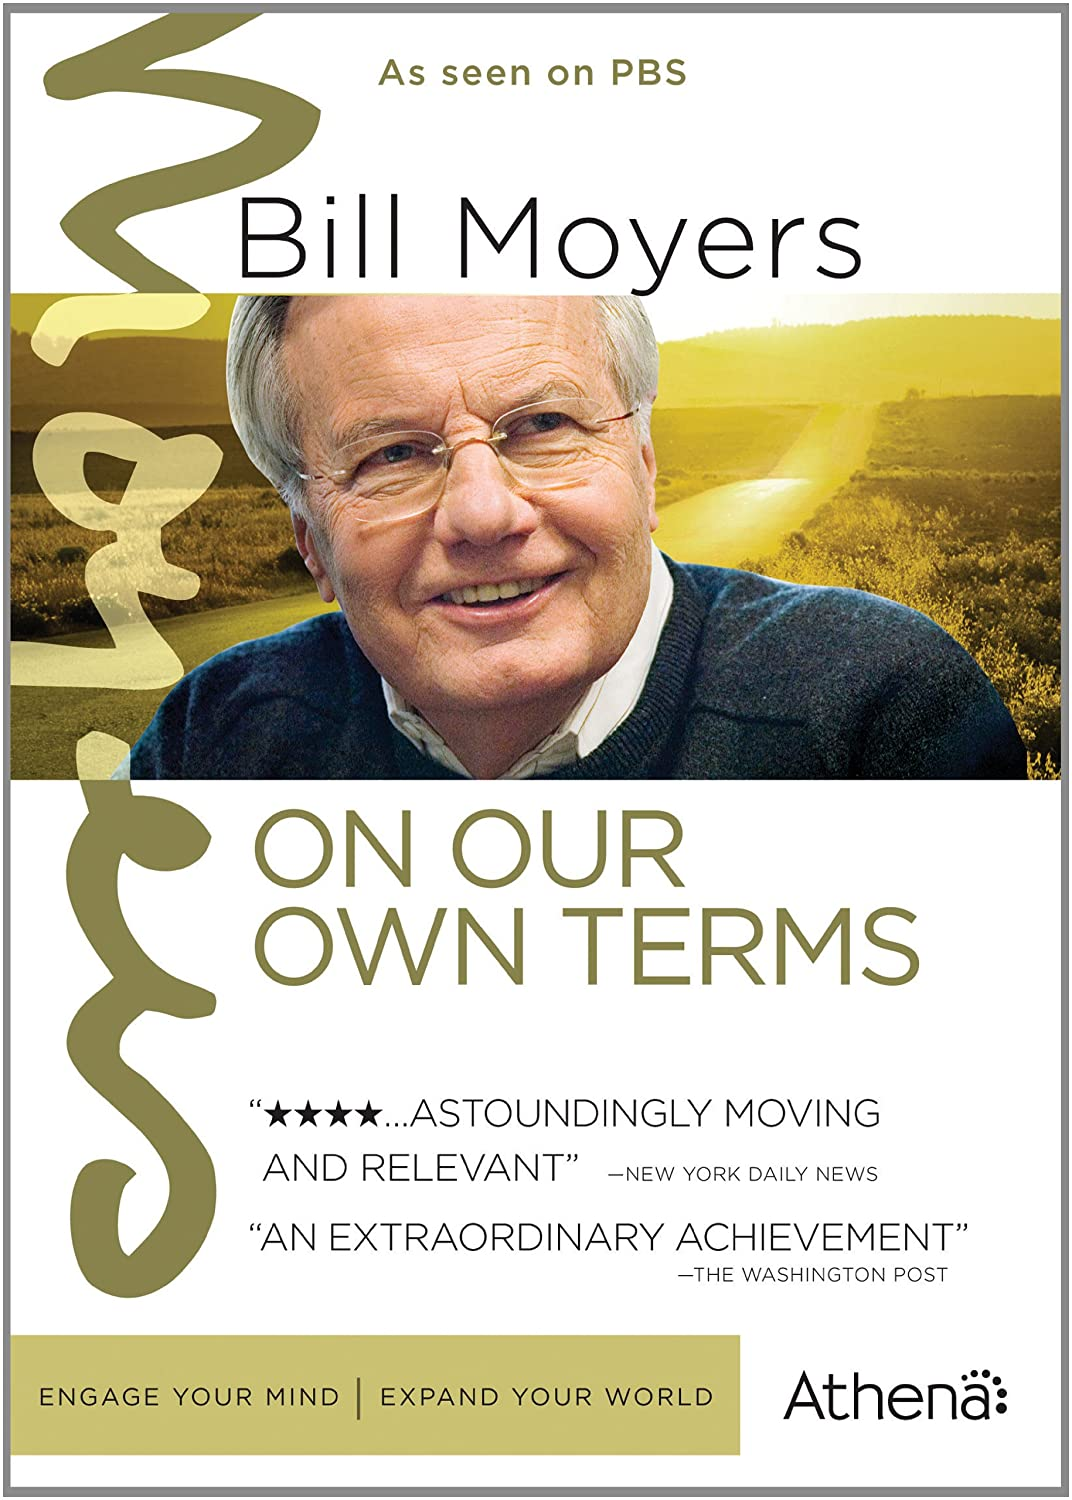 Amazon.com: BILL MOYERS: ON OUR OWN TERMS: Bill Moyers: On Our Own Terms: Movies & TV